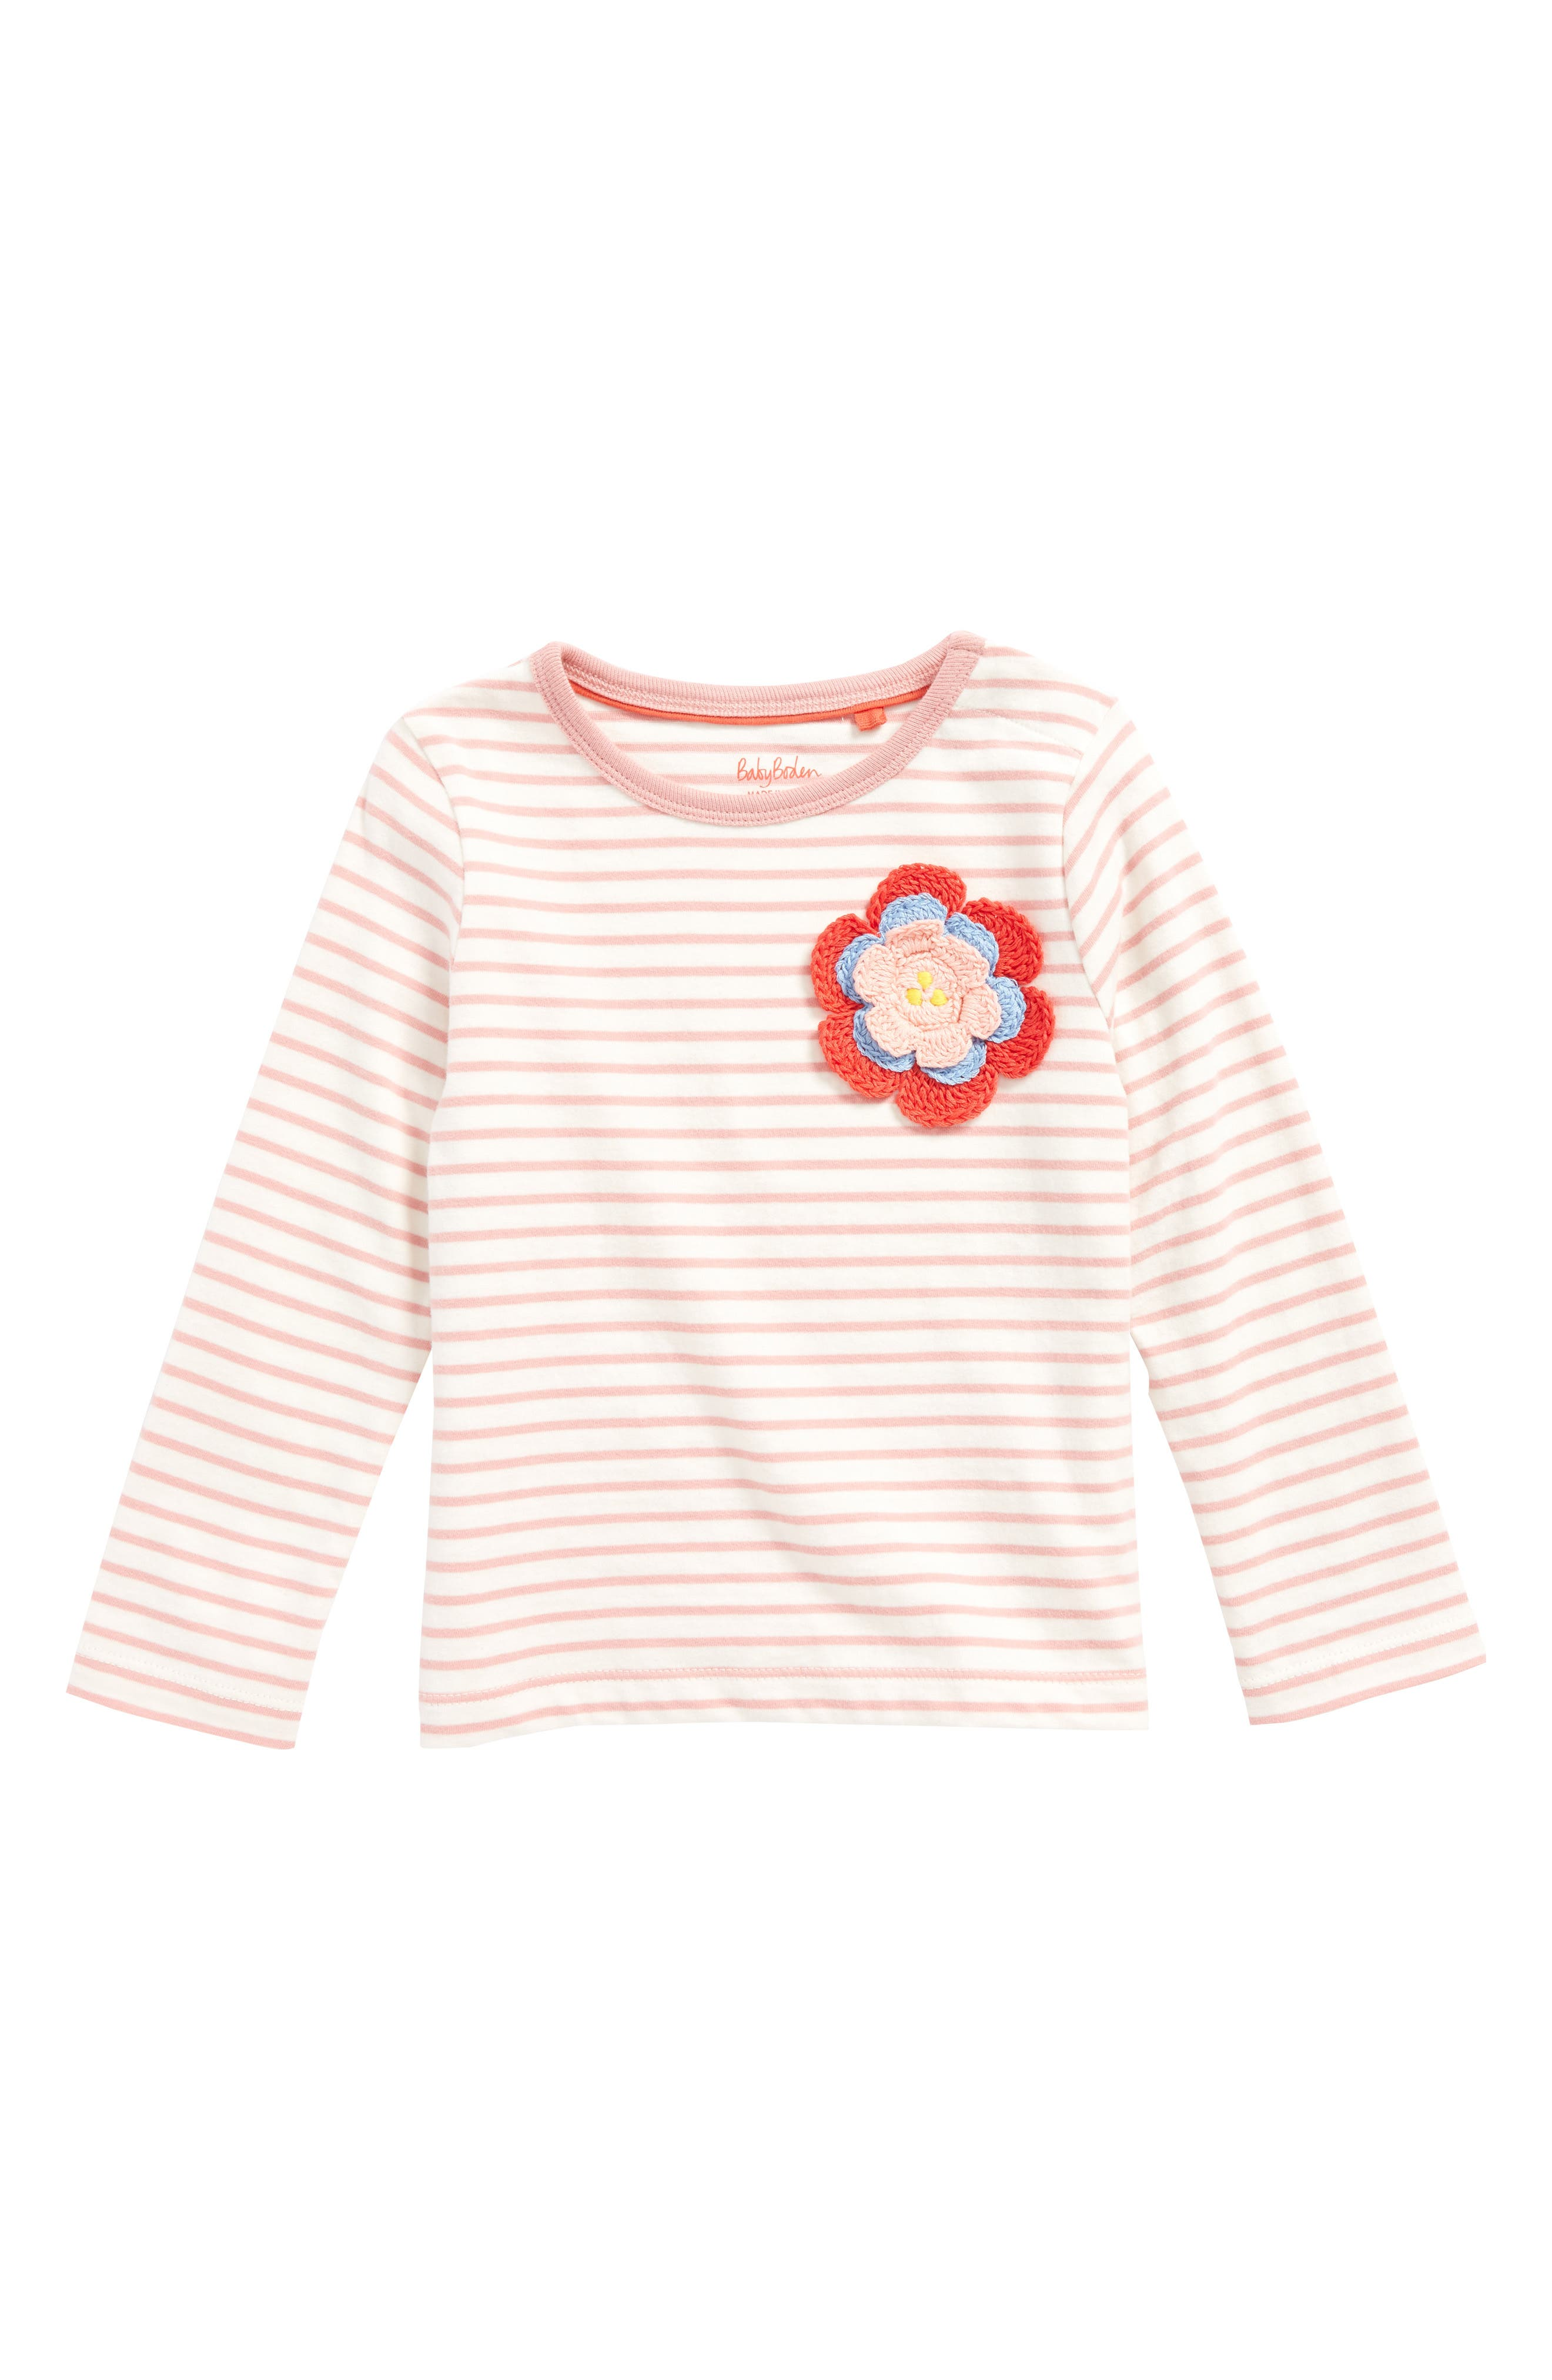 Stripy Crochet Appliqué Tee,                             Main thumbnail 1, color,                             Almond Blossom Pink